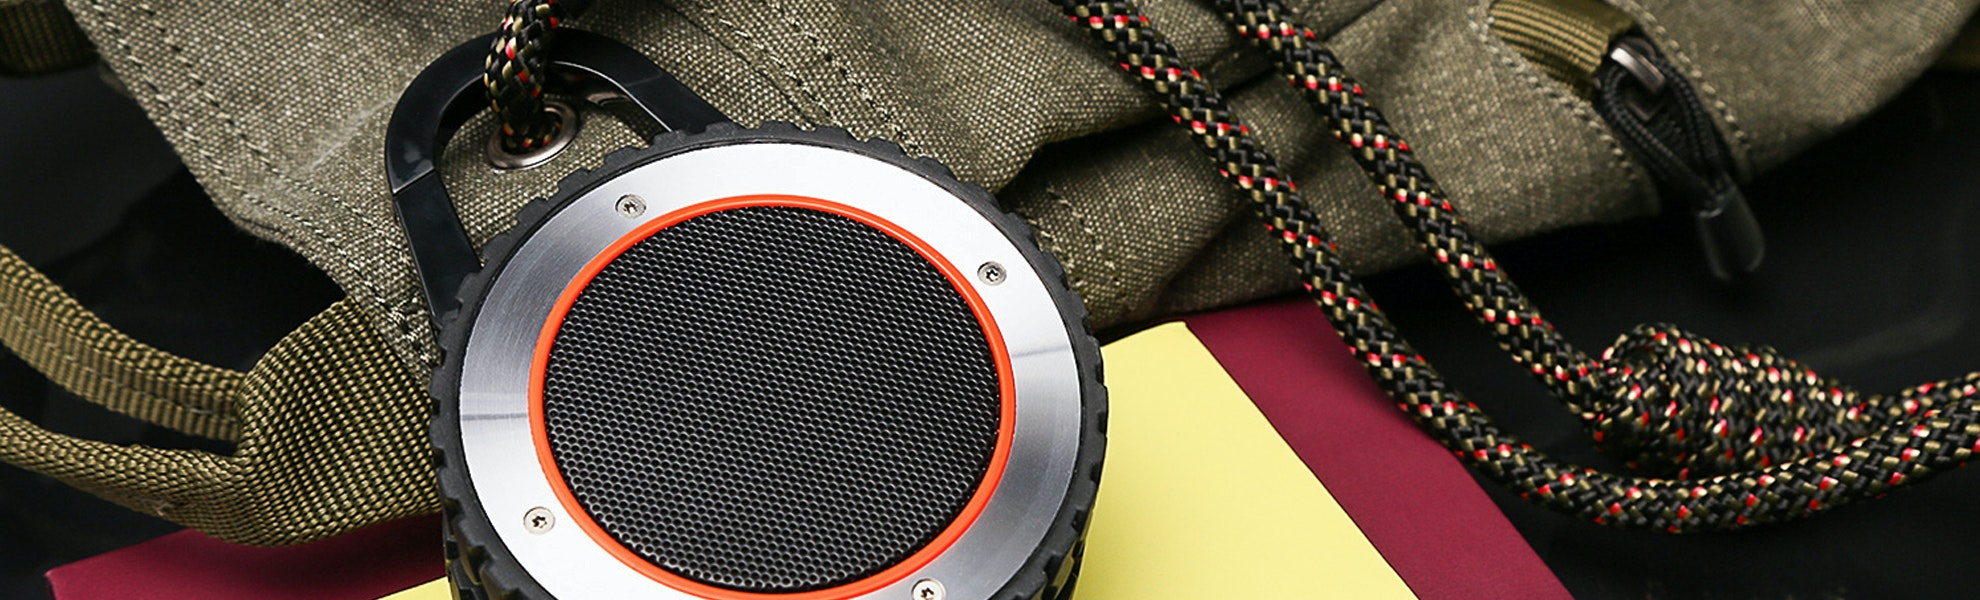 All-Terrain Sound Bluetooth Speaker